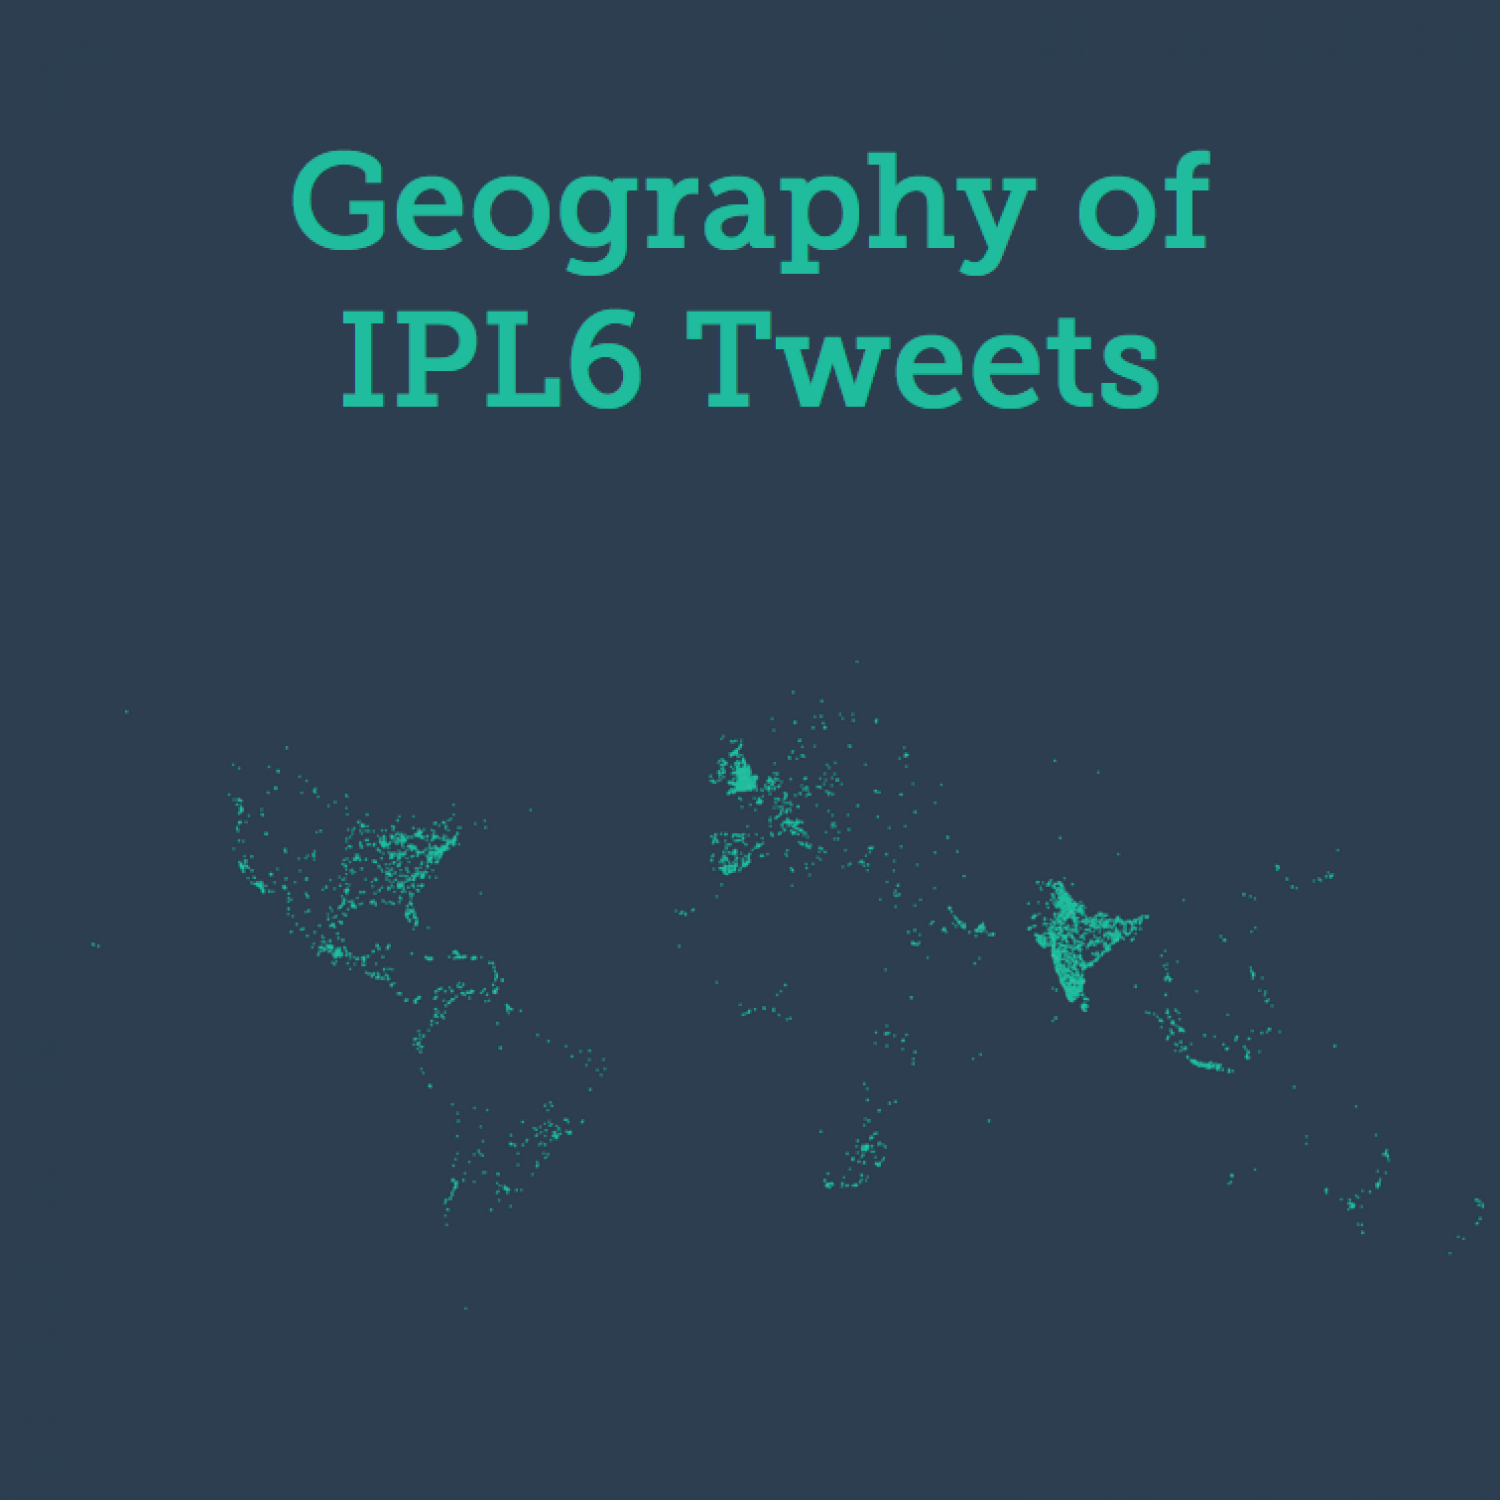 Geography of IPL6 Tweets Infographic